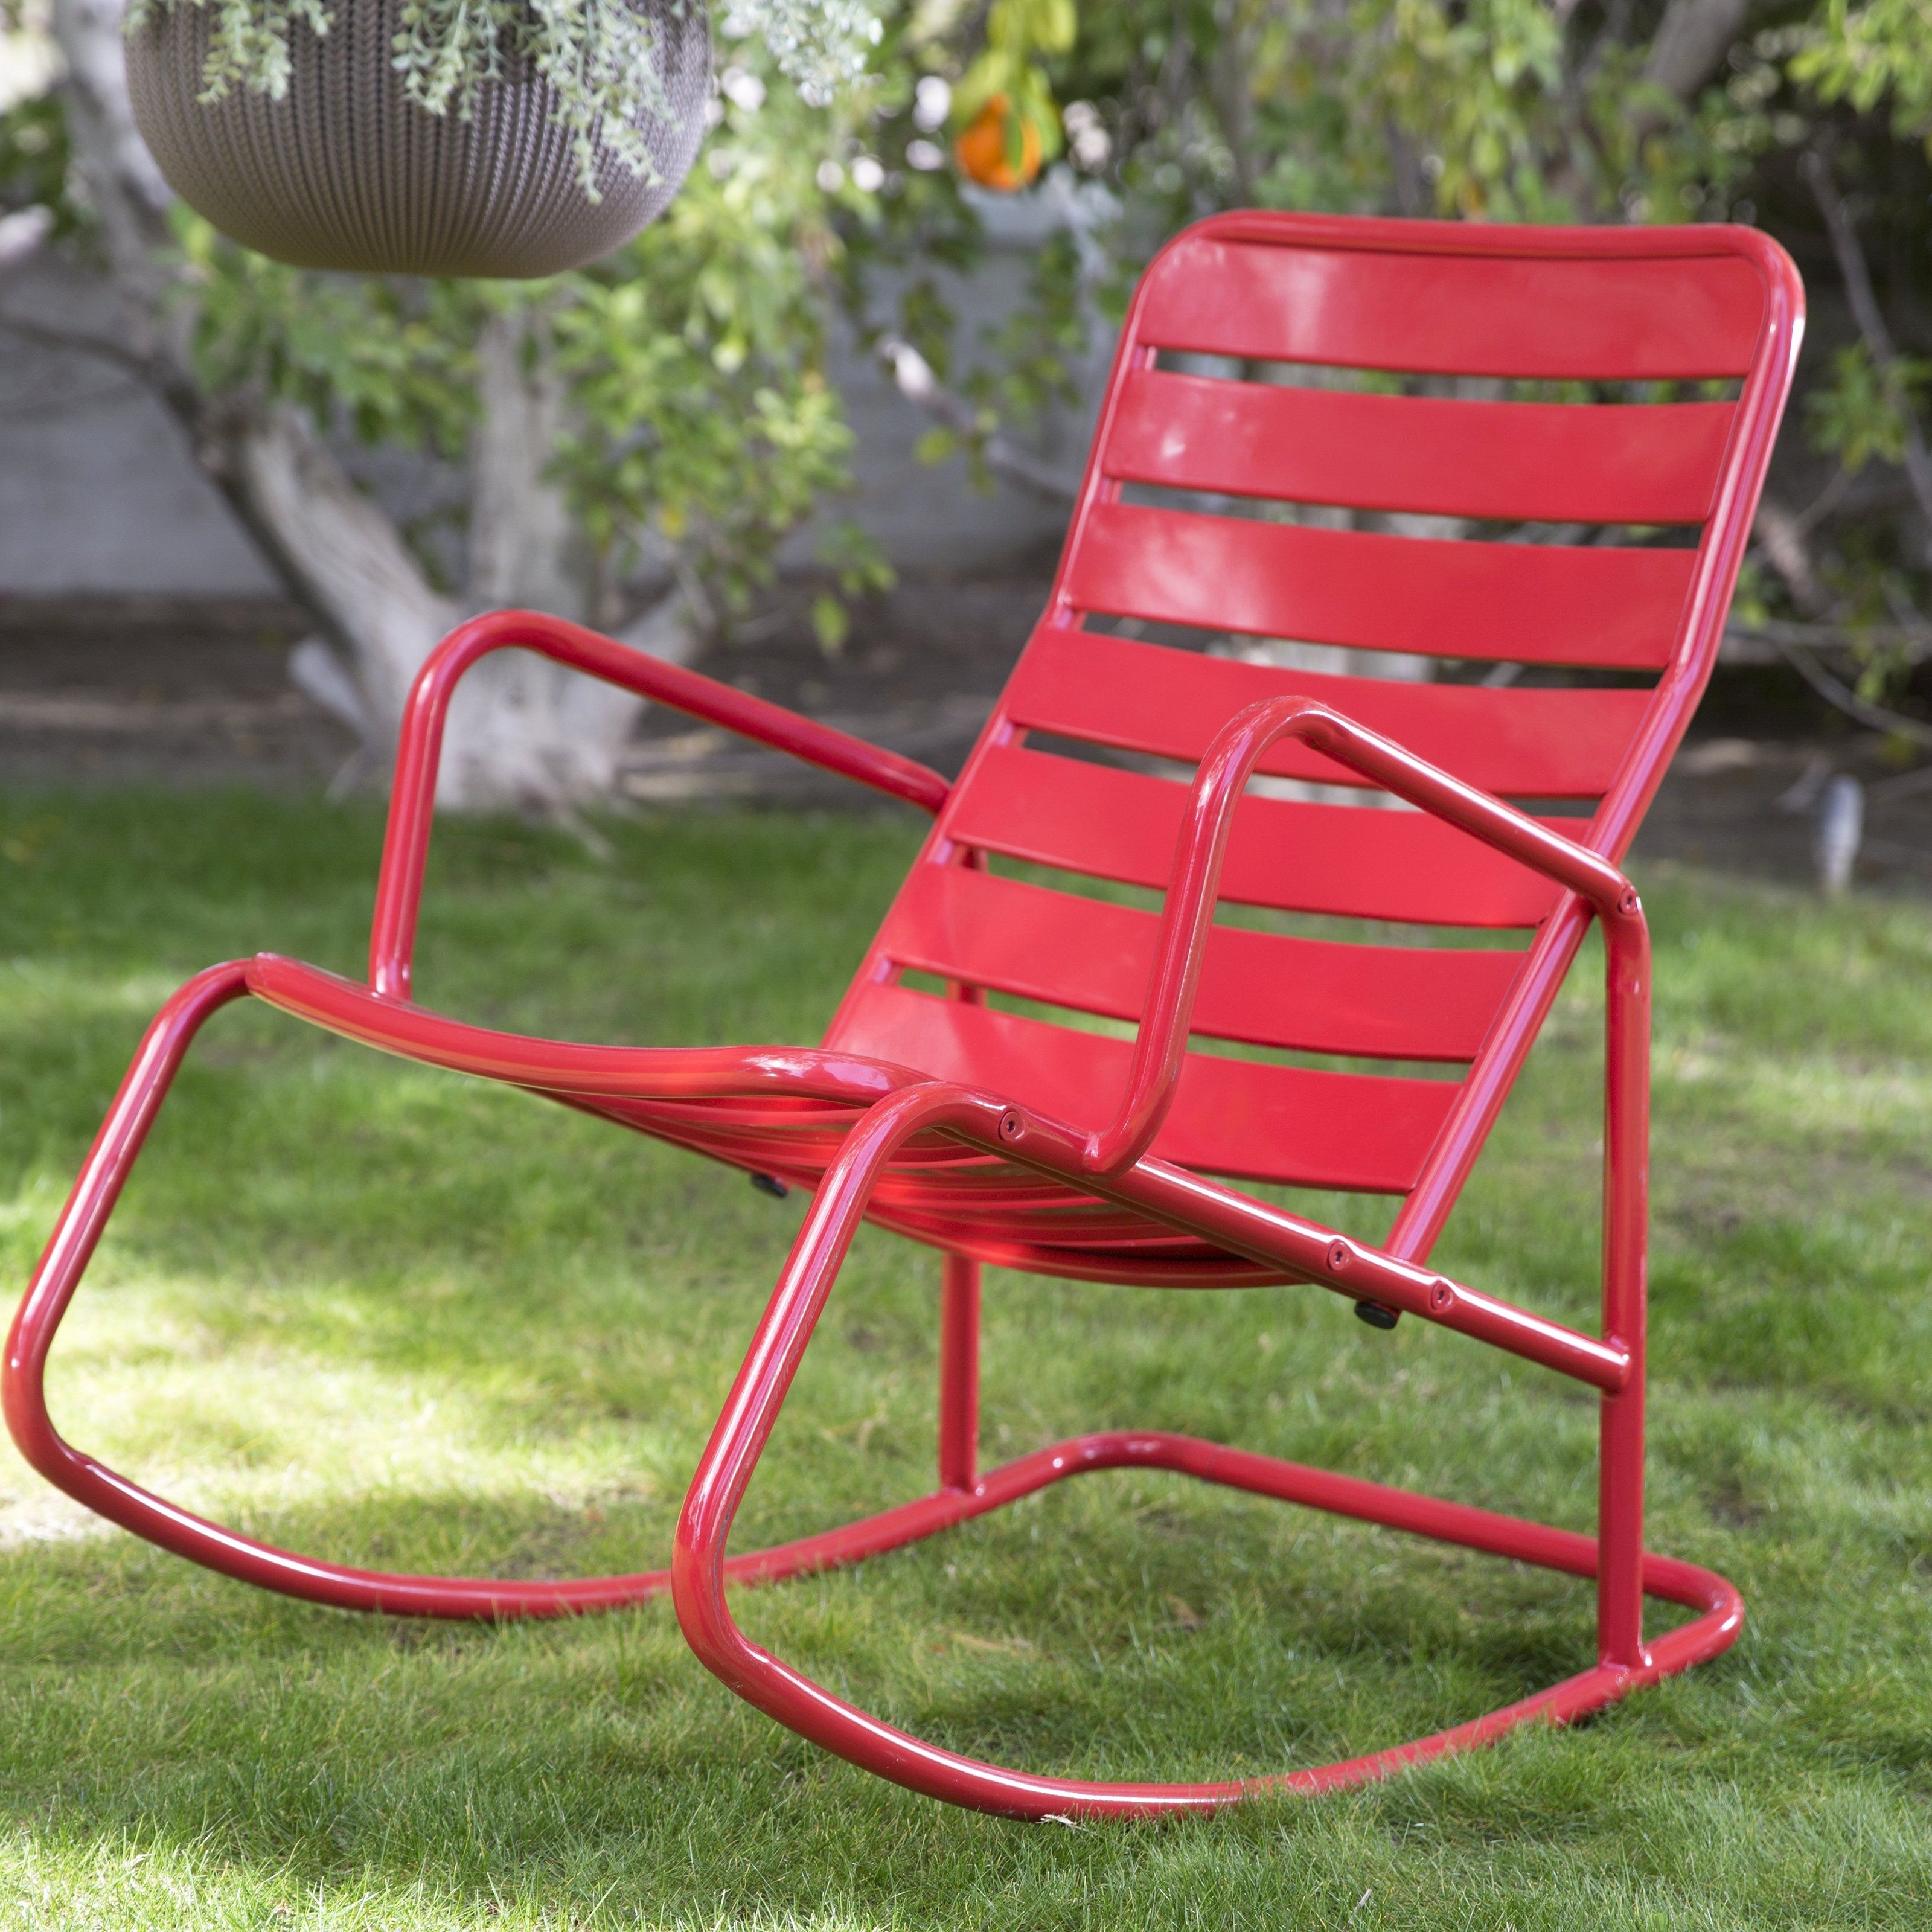 30 The Best Modern Outdoor Rocking Chair Ideas (View 2 of 15)